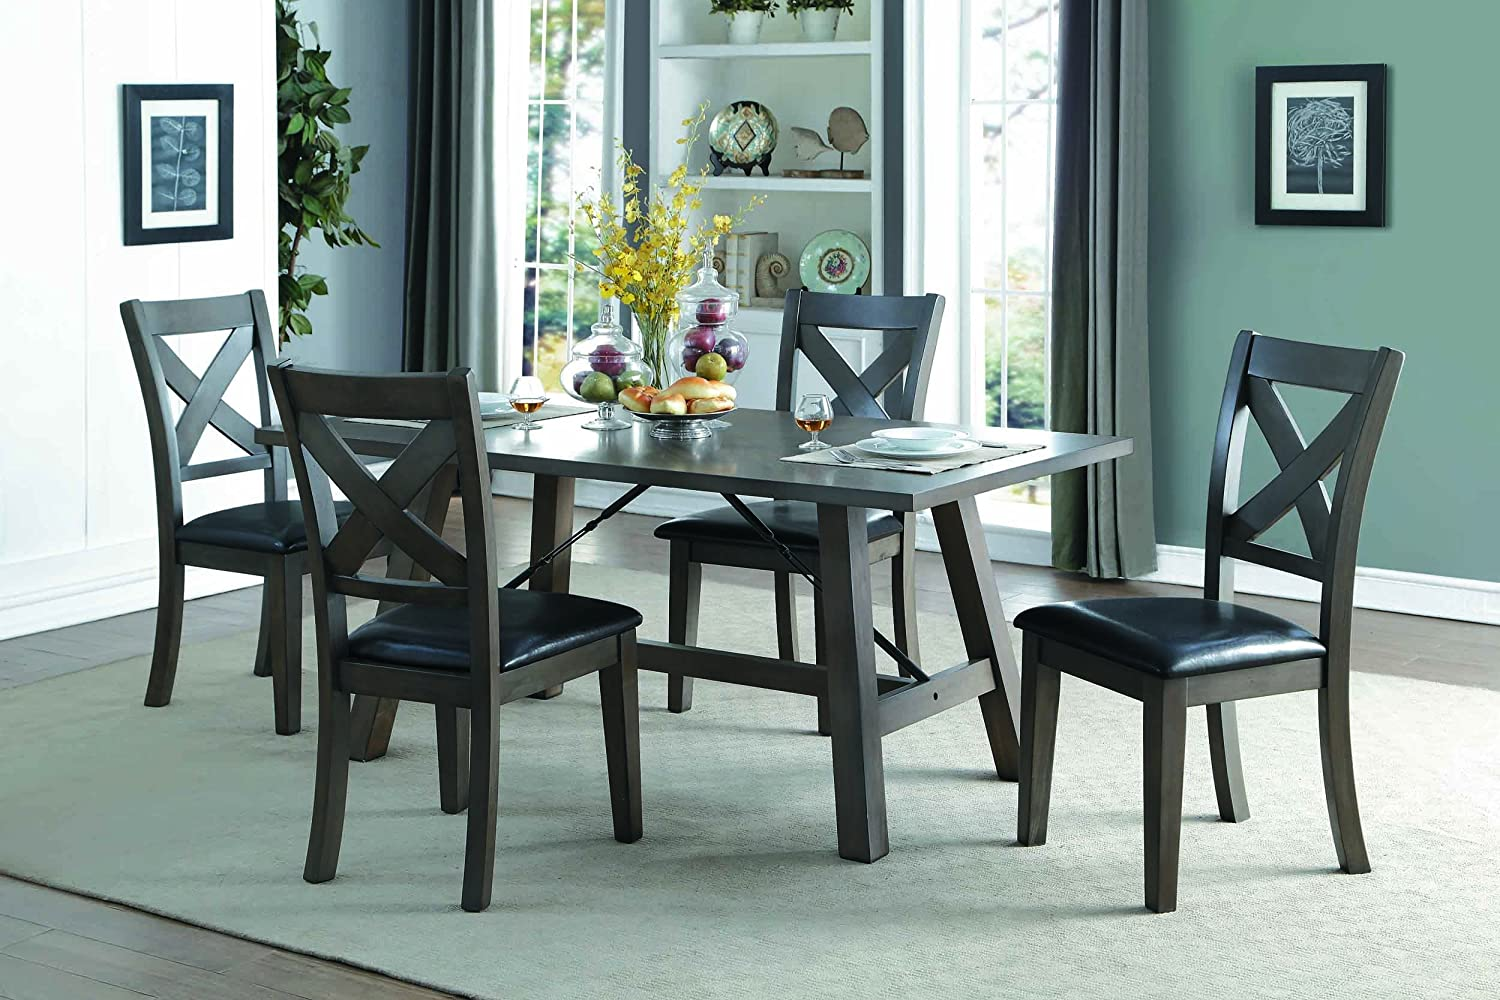 Amazon.com: Homelegance Seaford Dining Table Industrial Style, Gray ...